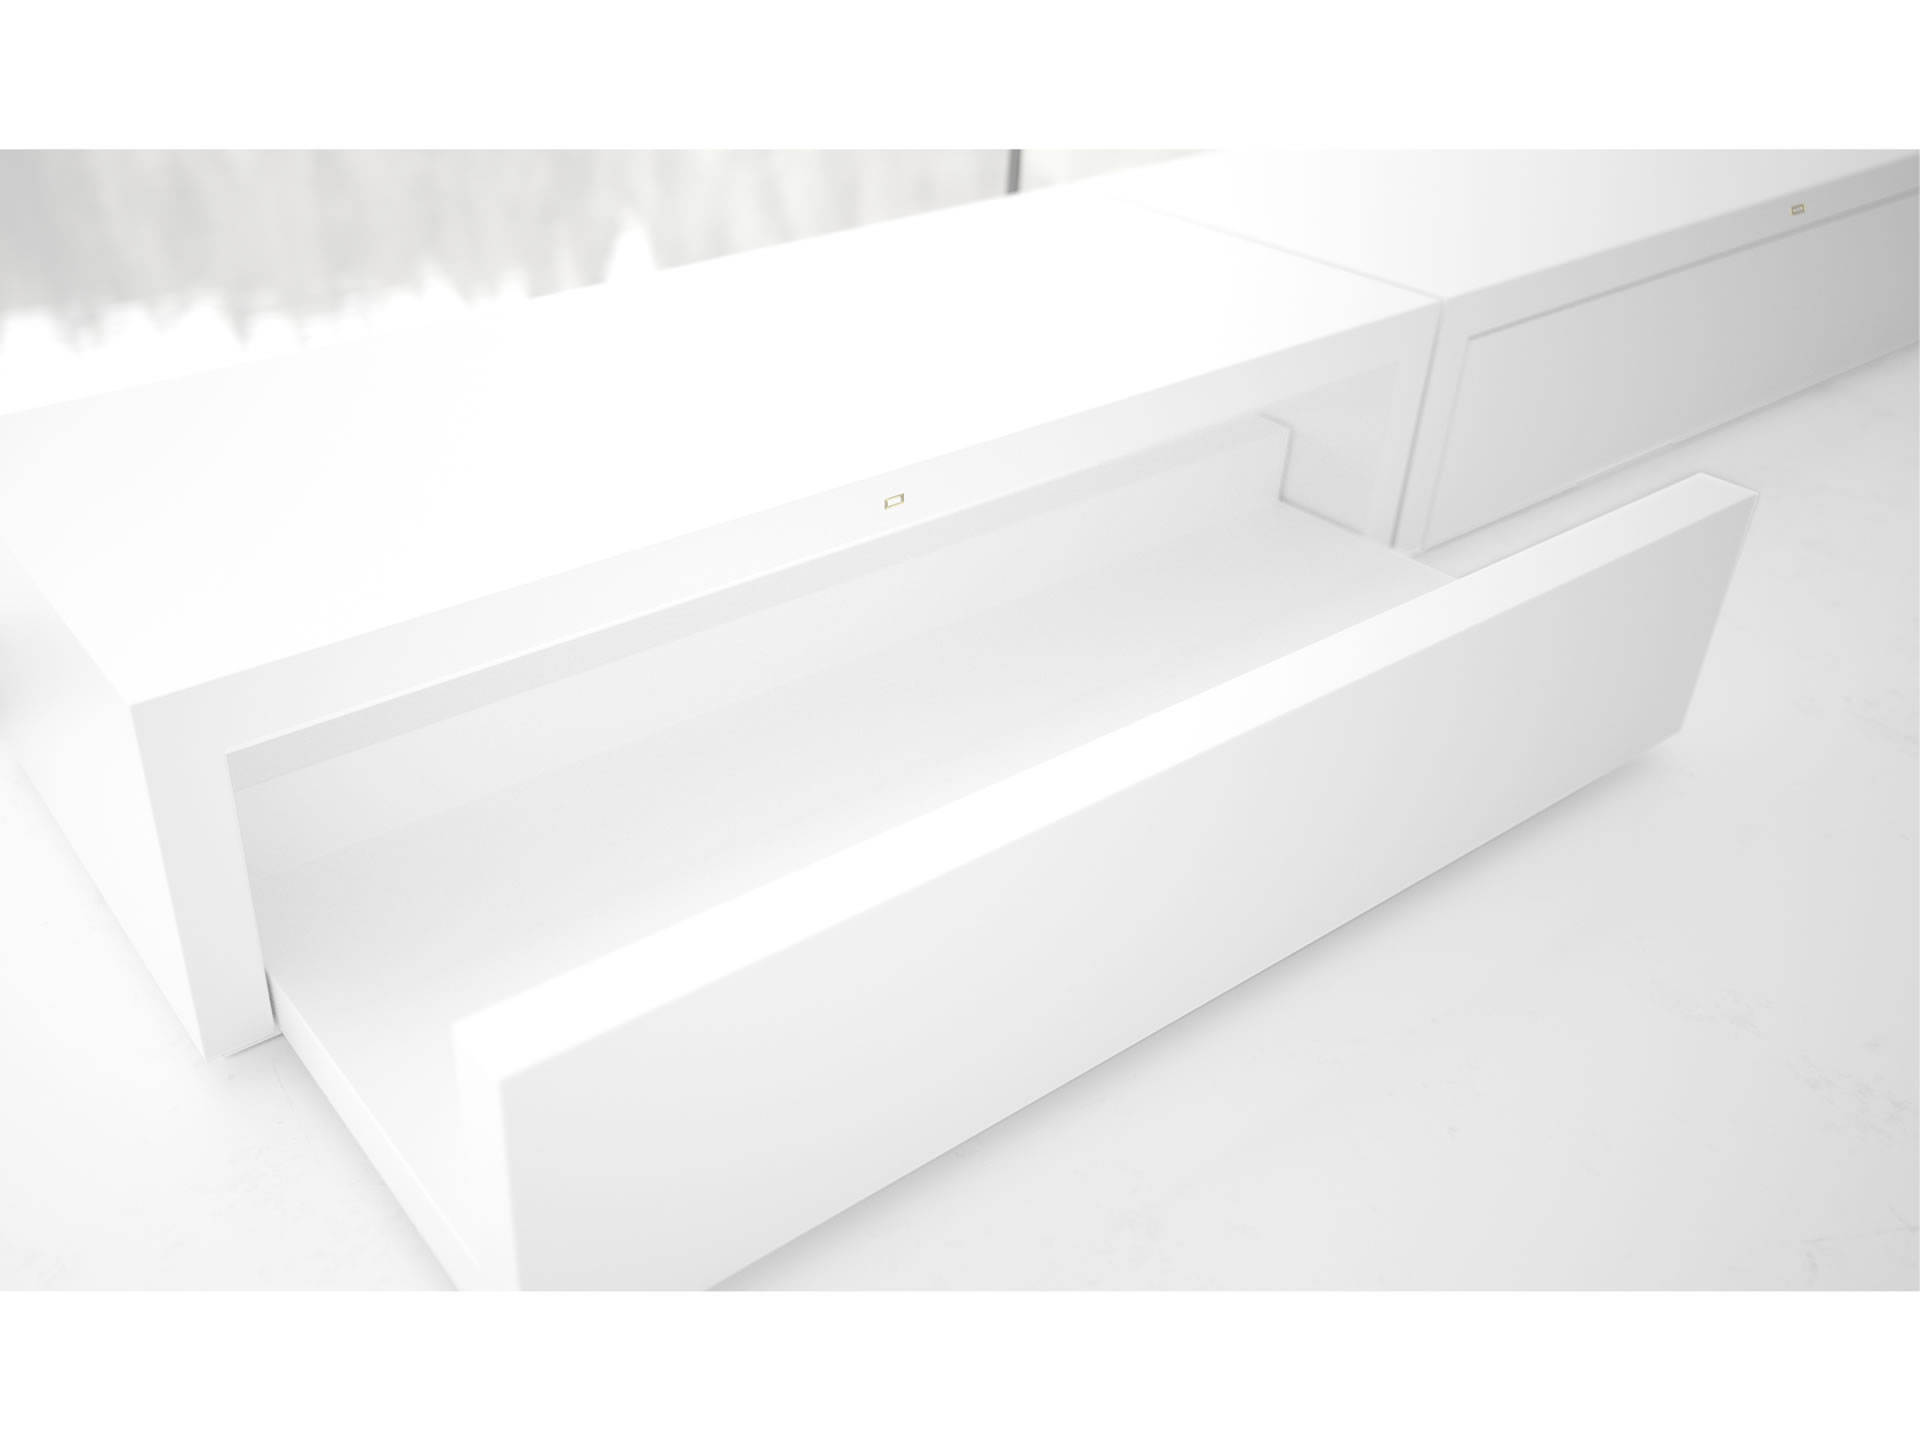 FELIX SCHWAKE SCHRANK I I Innovatives Weisses Hifi Sideboard